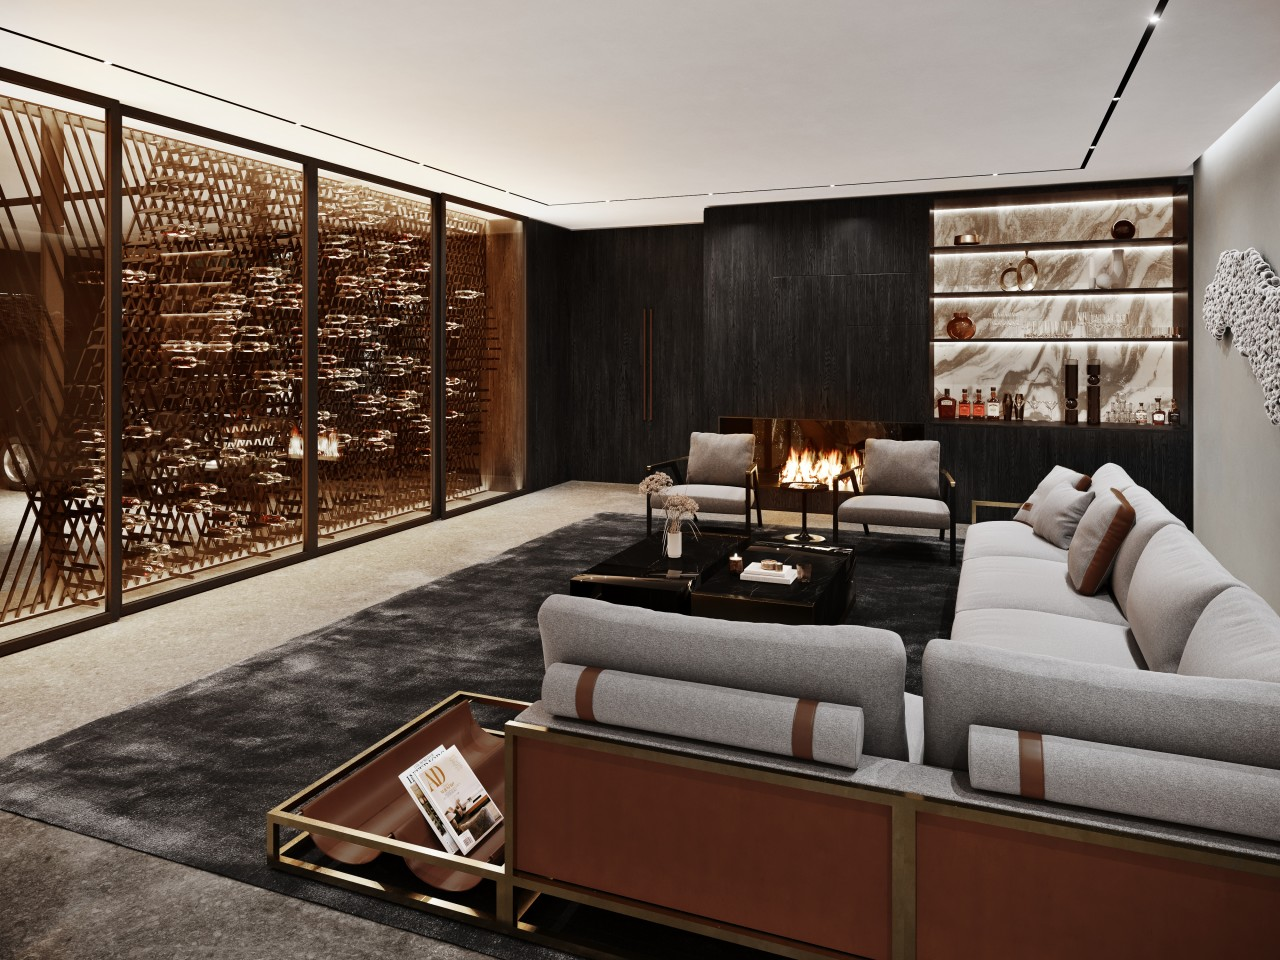 Aston Martin's private residence from the inside